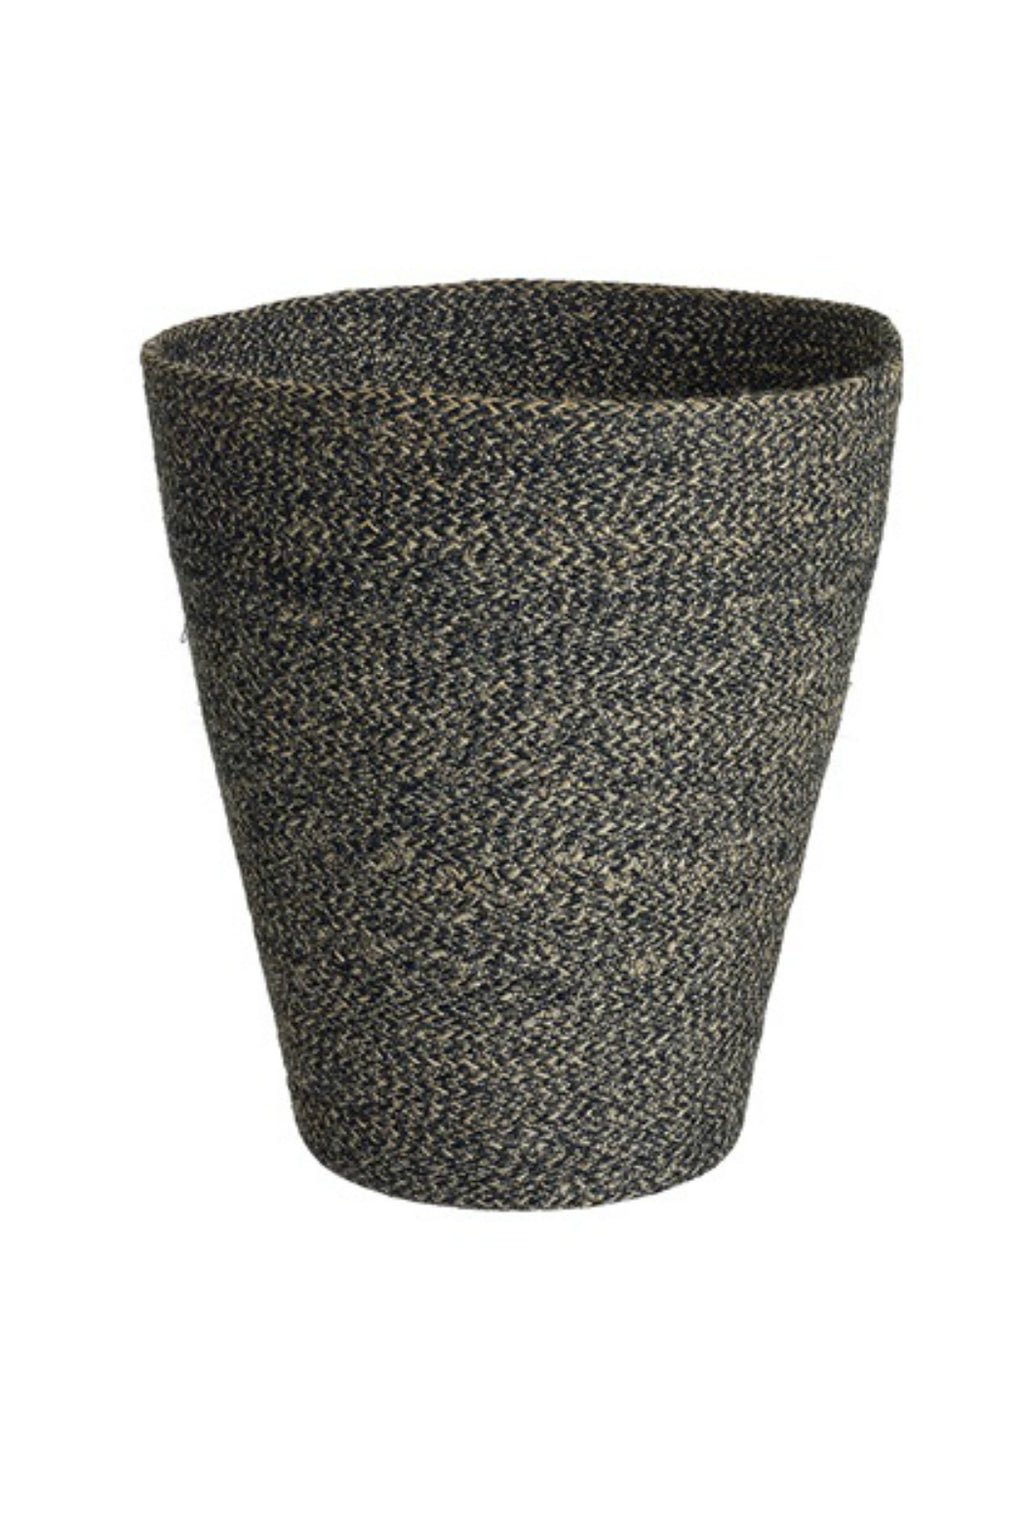 Texture by Design Ideas Melia Lined Basket Black